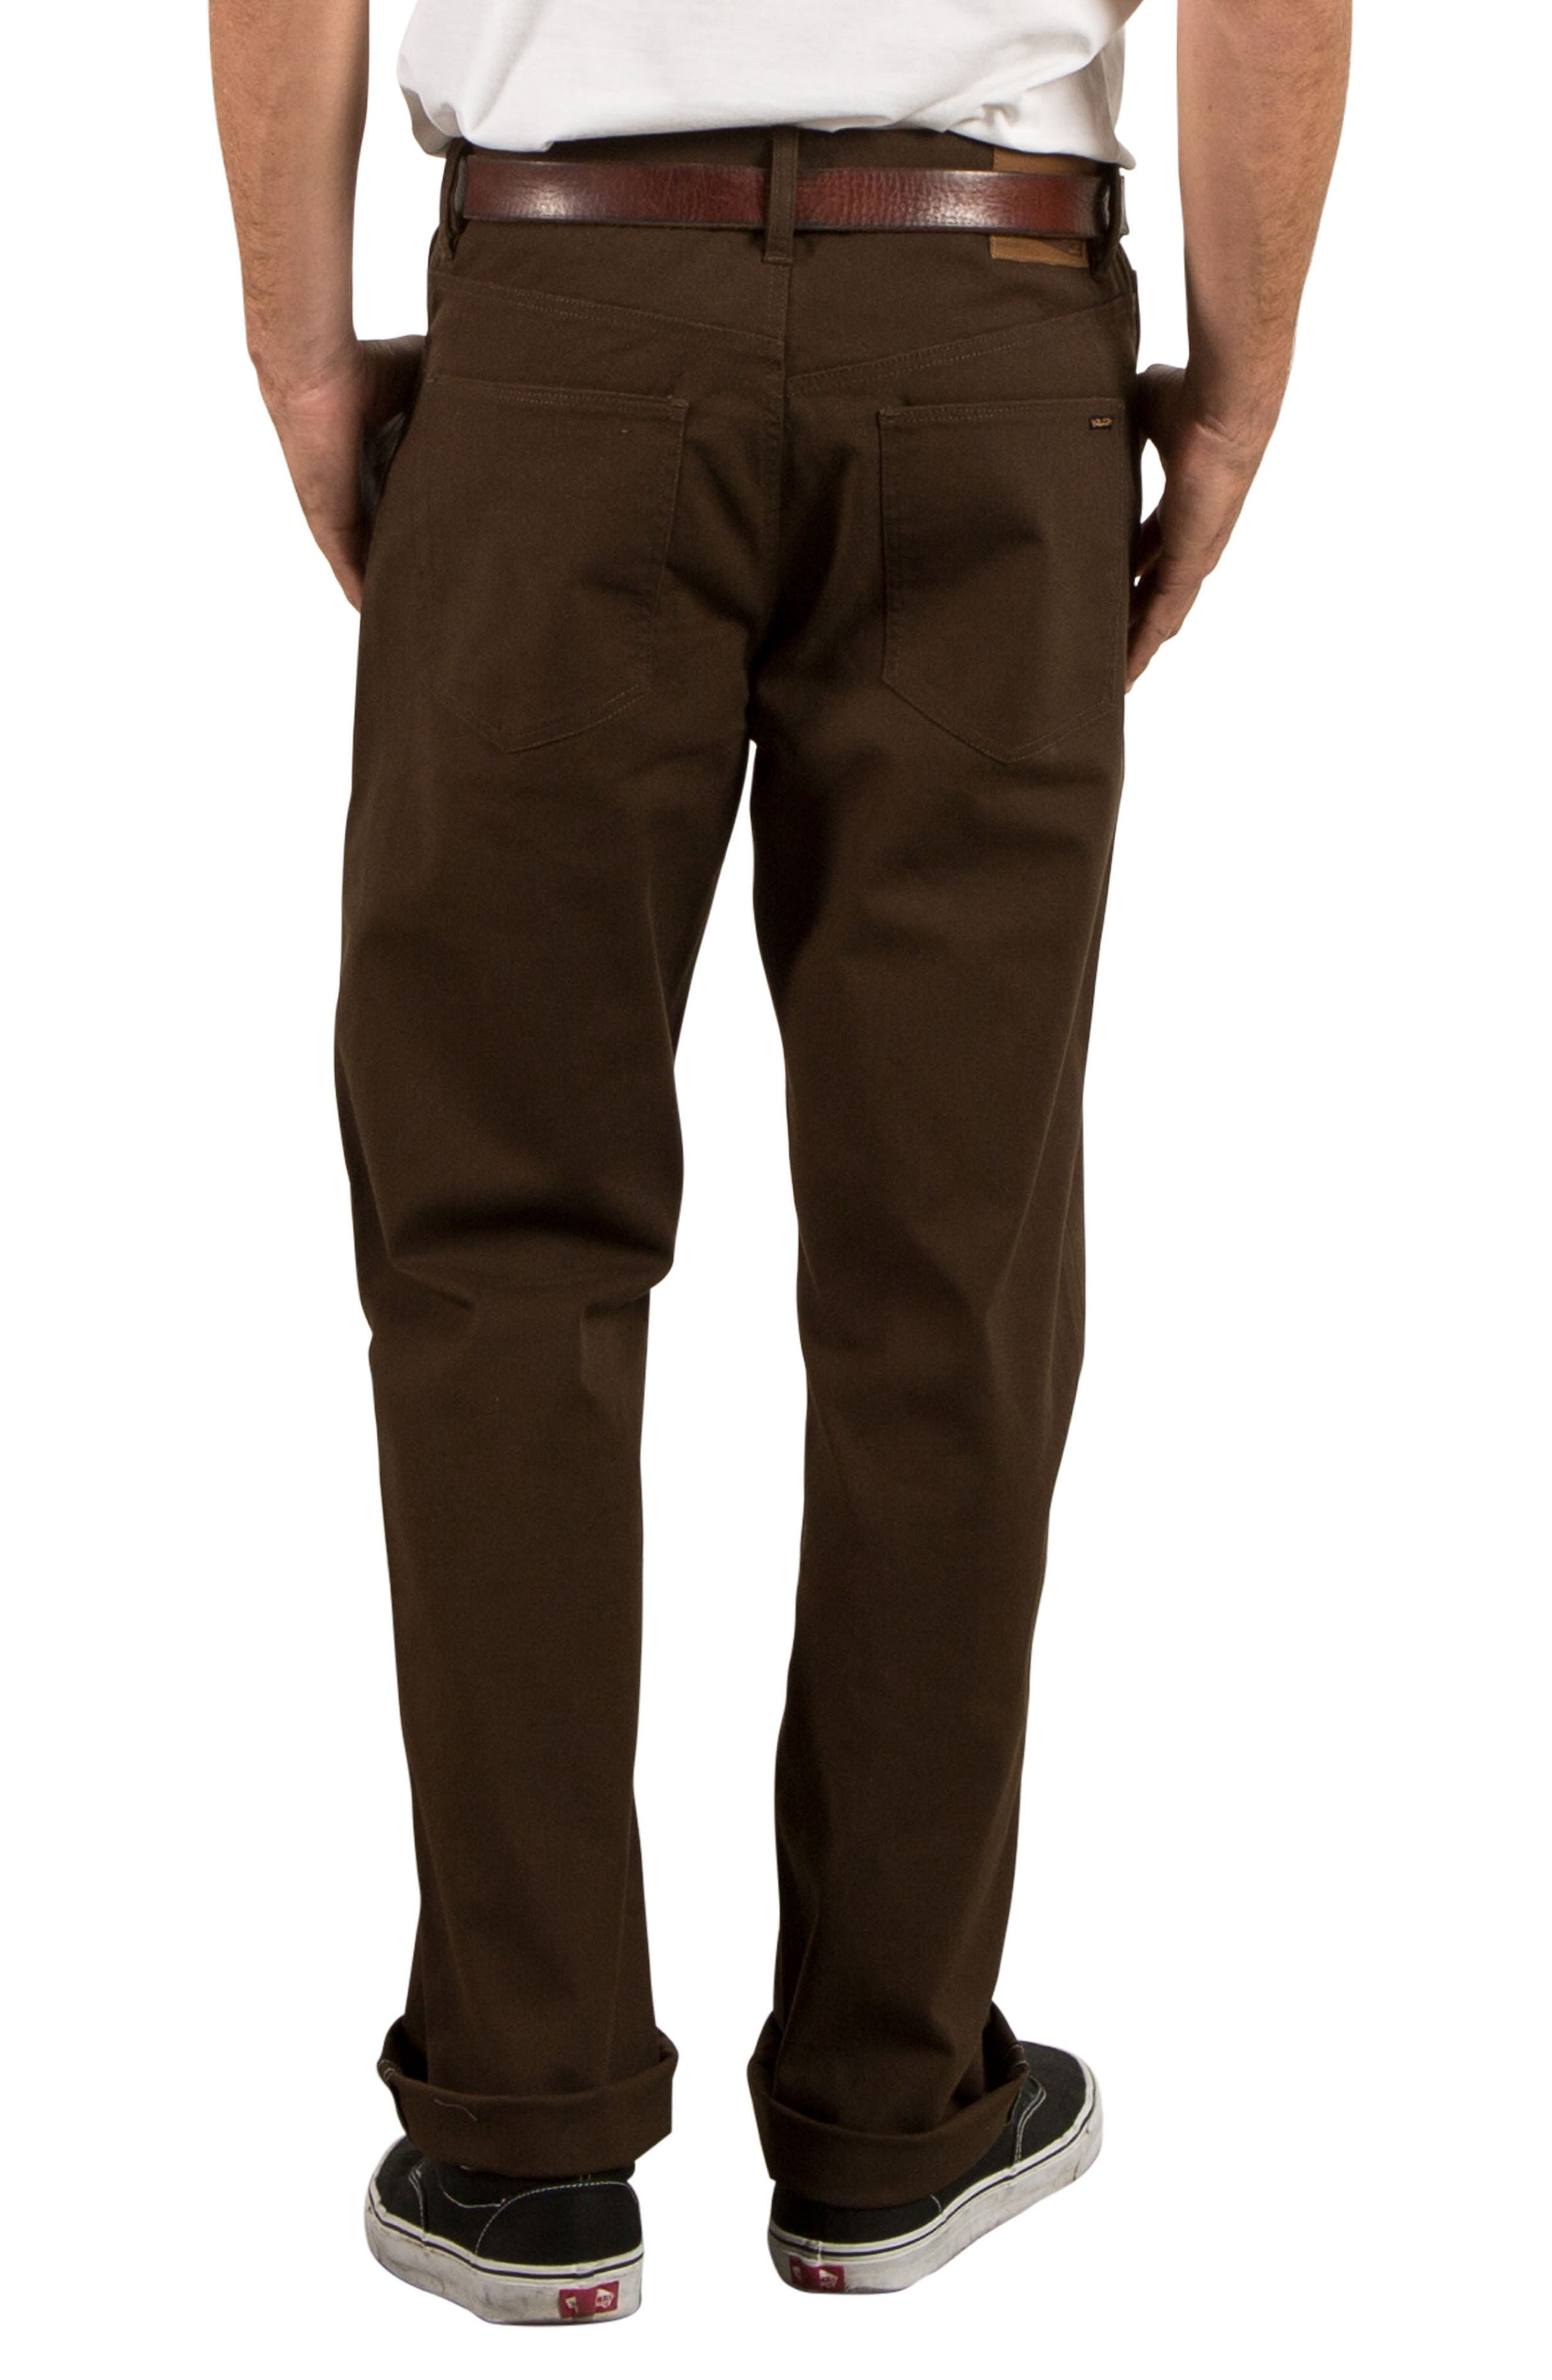 Kinkade Five-Pocket Thrifter Pants,                             Alternate thumbnail 2, color,                             208